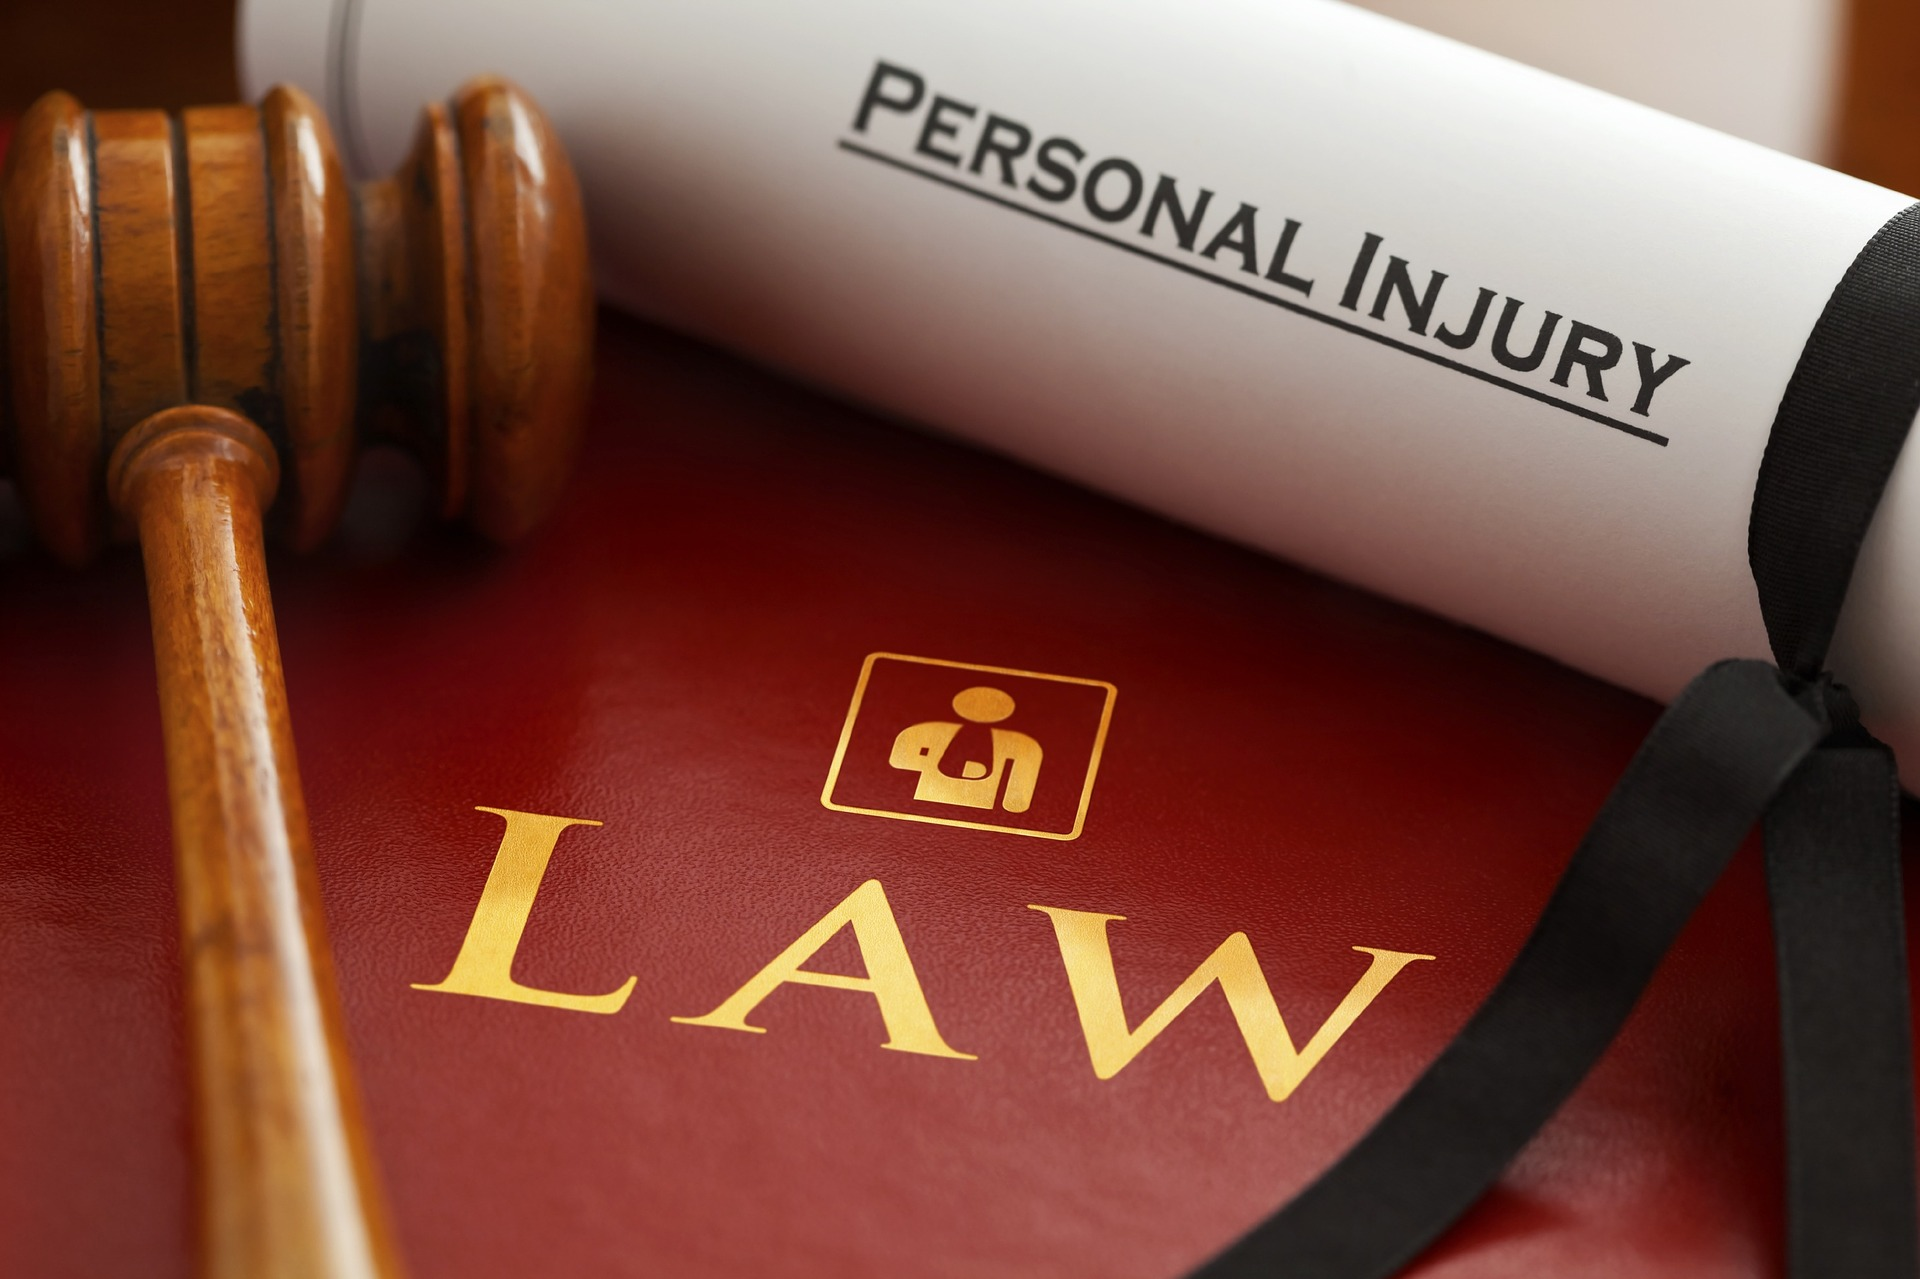 advice if you are injured personal injury law Fargo North Dakota